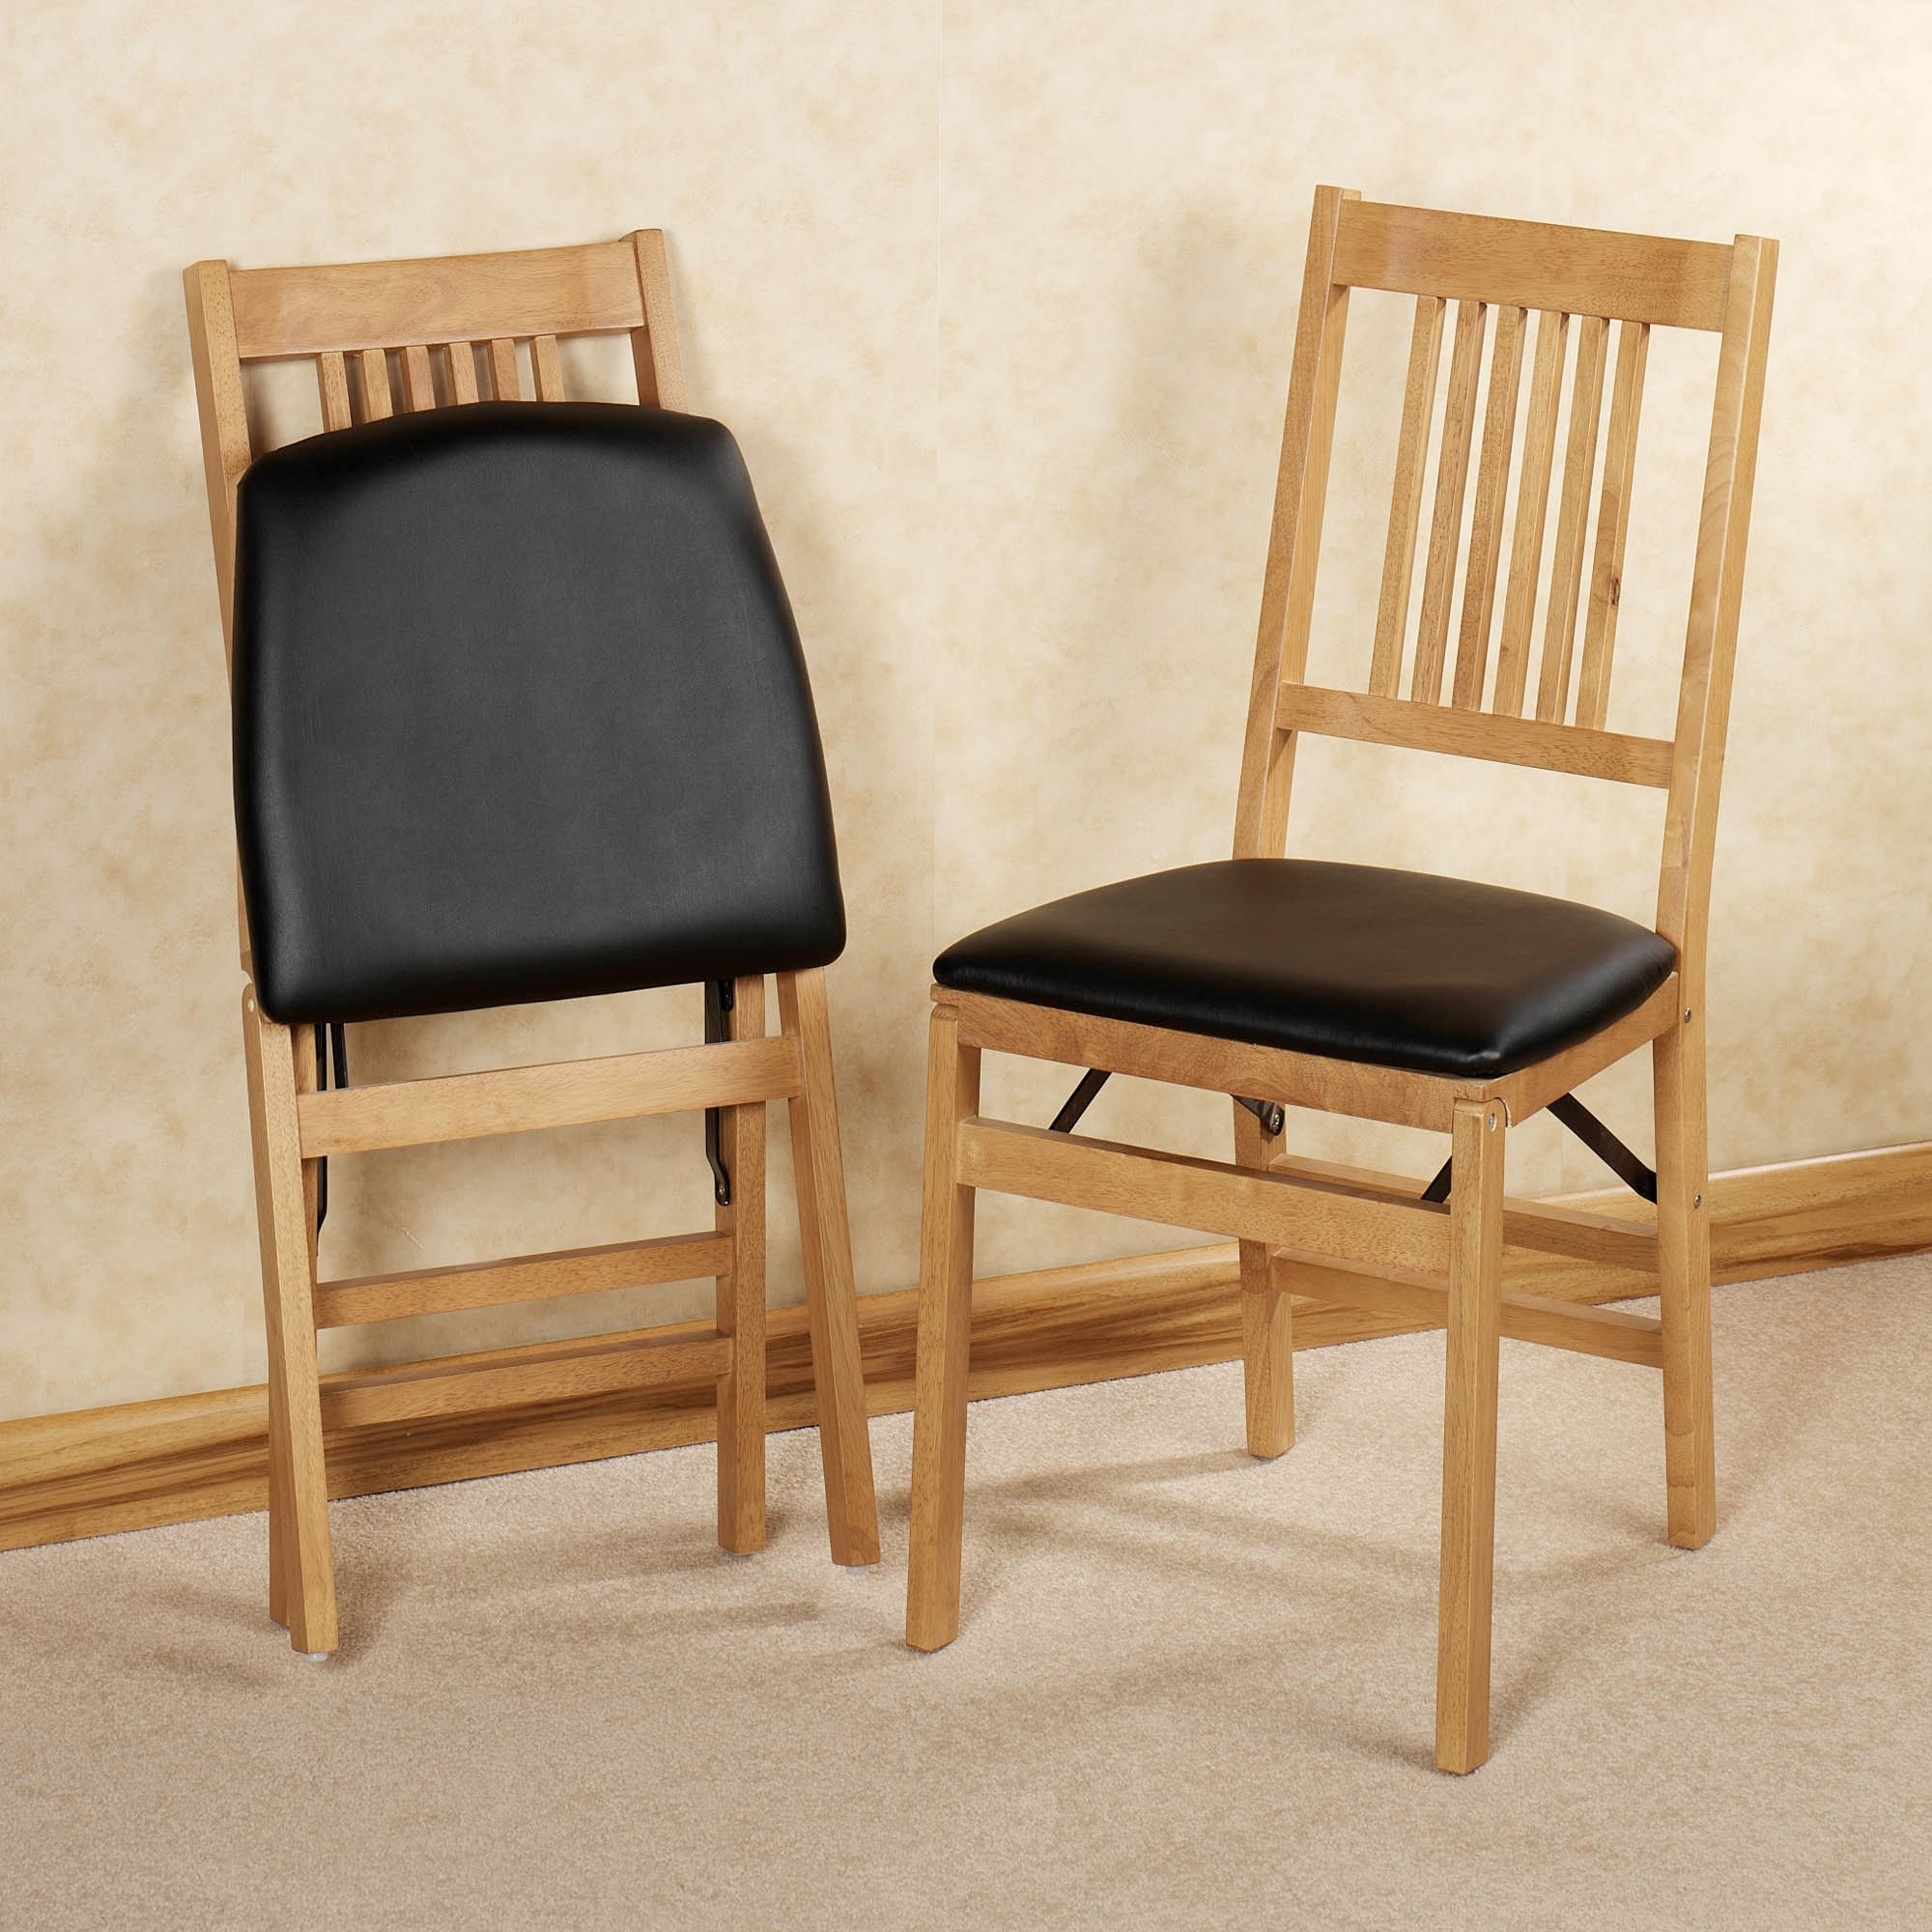 Lovely Mission Folding Chair Pair Pair. Touch To Zoom